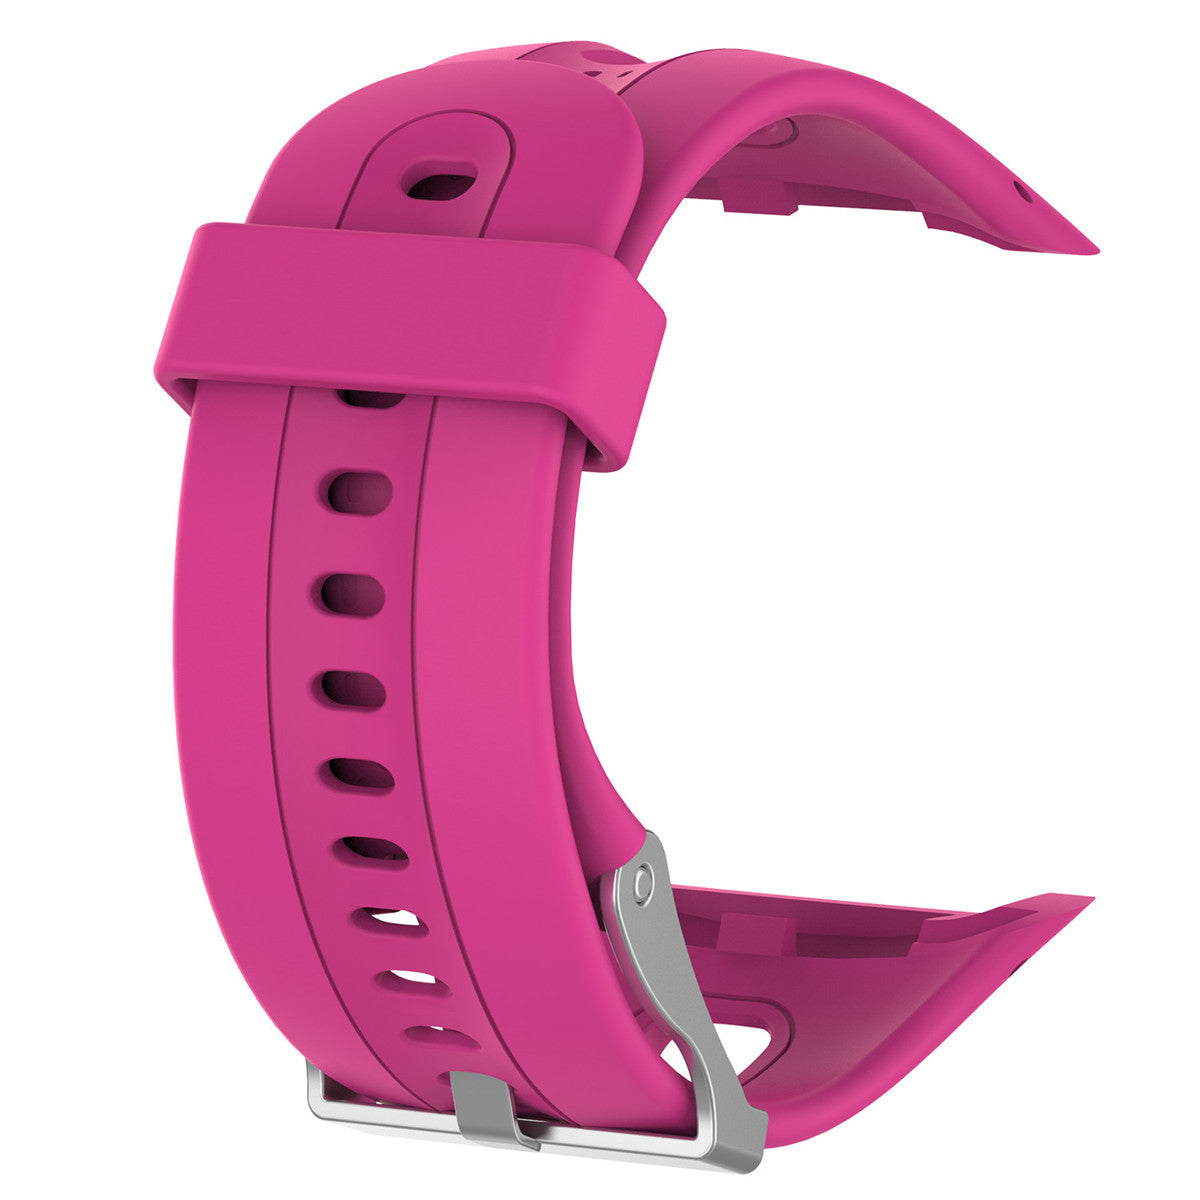 Garmin Forerunner Wrist Band Strap +Tools  for Garmin Forerunner 10/15 GPS Running Watch